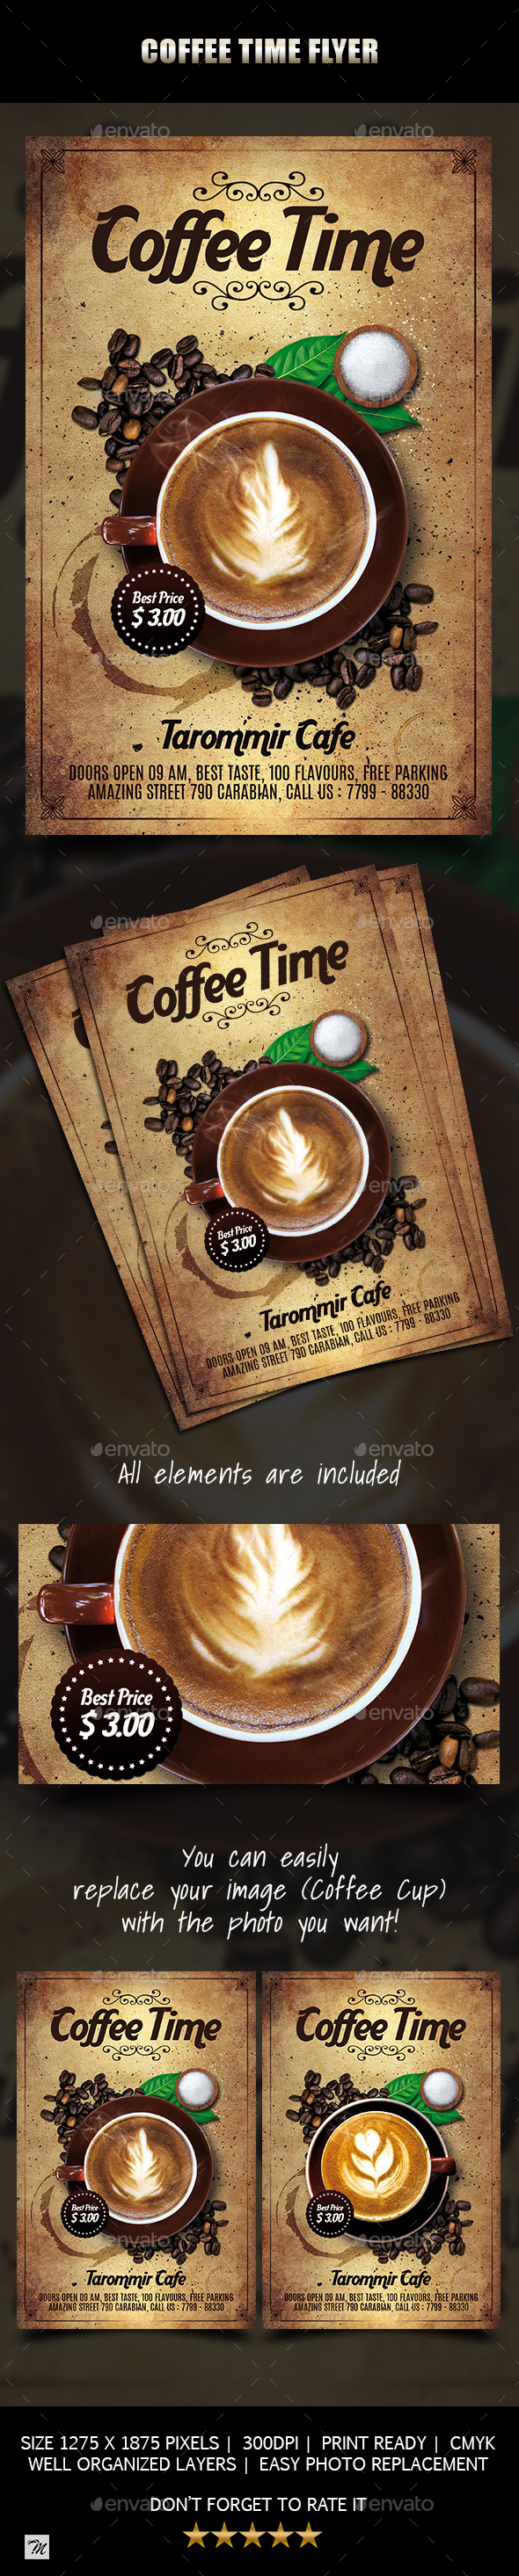 Coffee Time Flyer - Restaurant Flyers